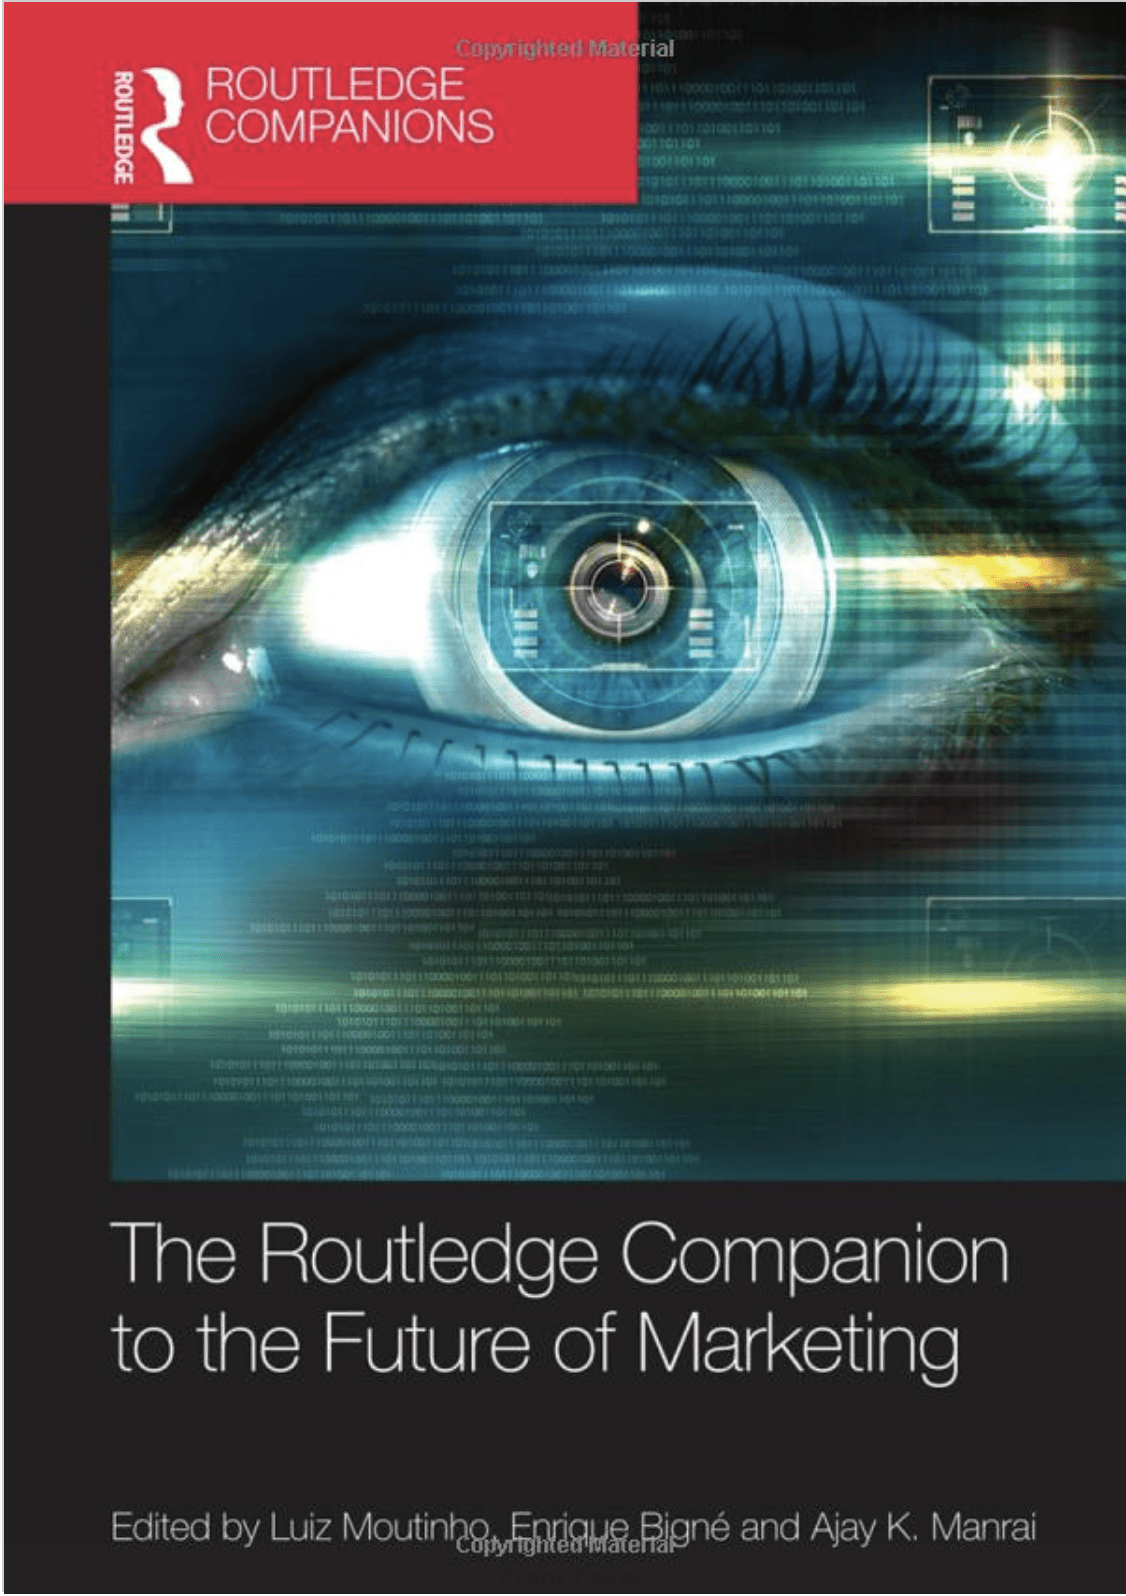 The Routledge Companion to the Future of Marketing 2